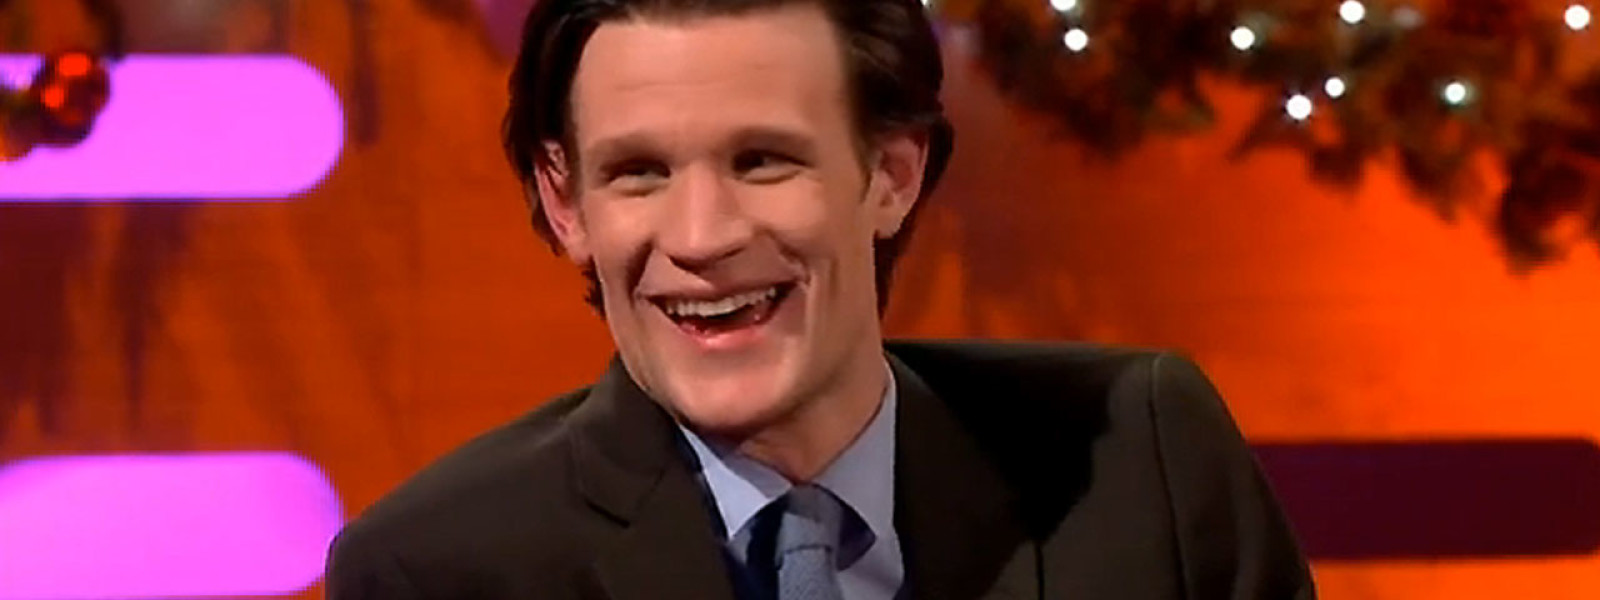 The Eleventh Doctor Matt Smith